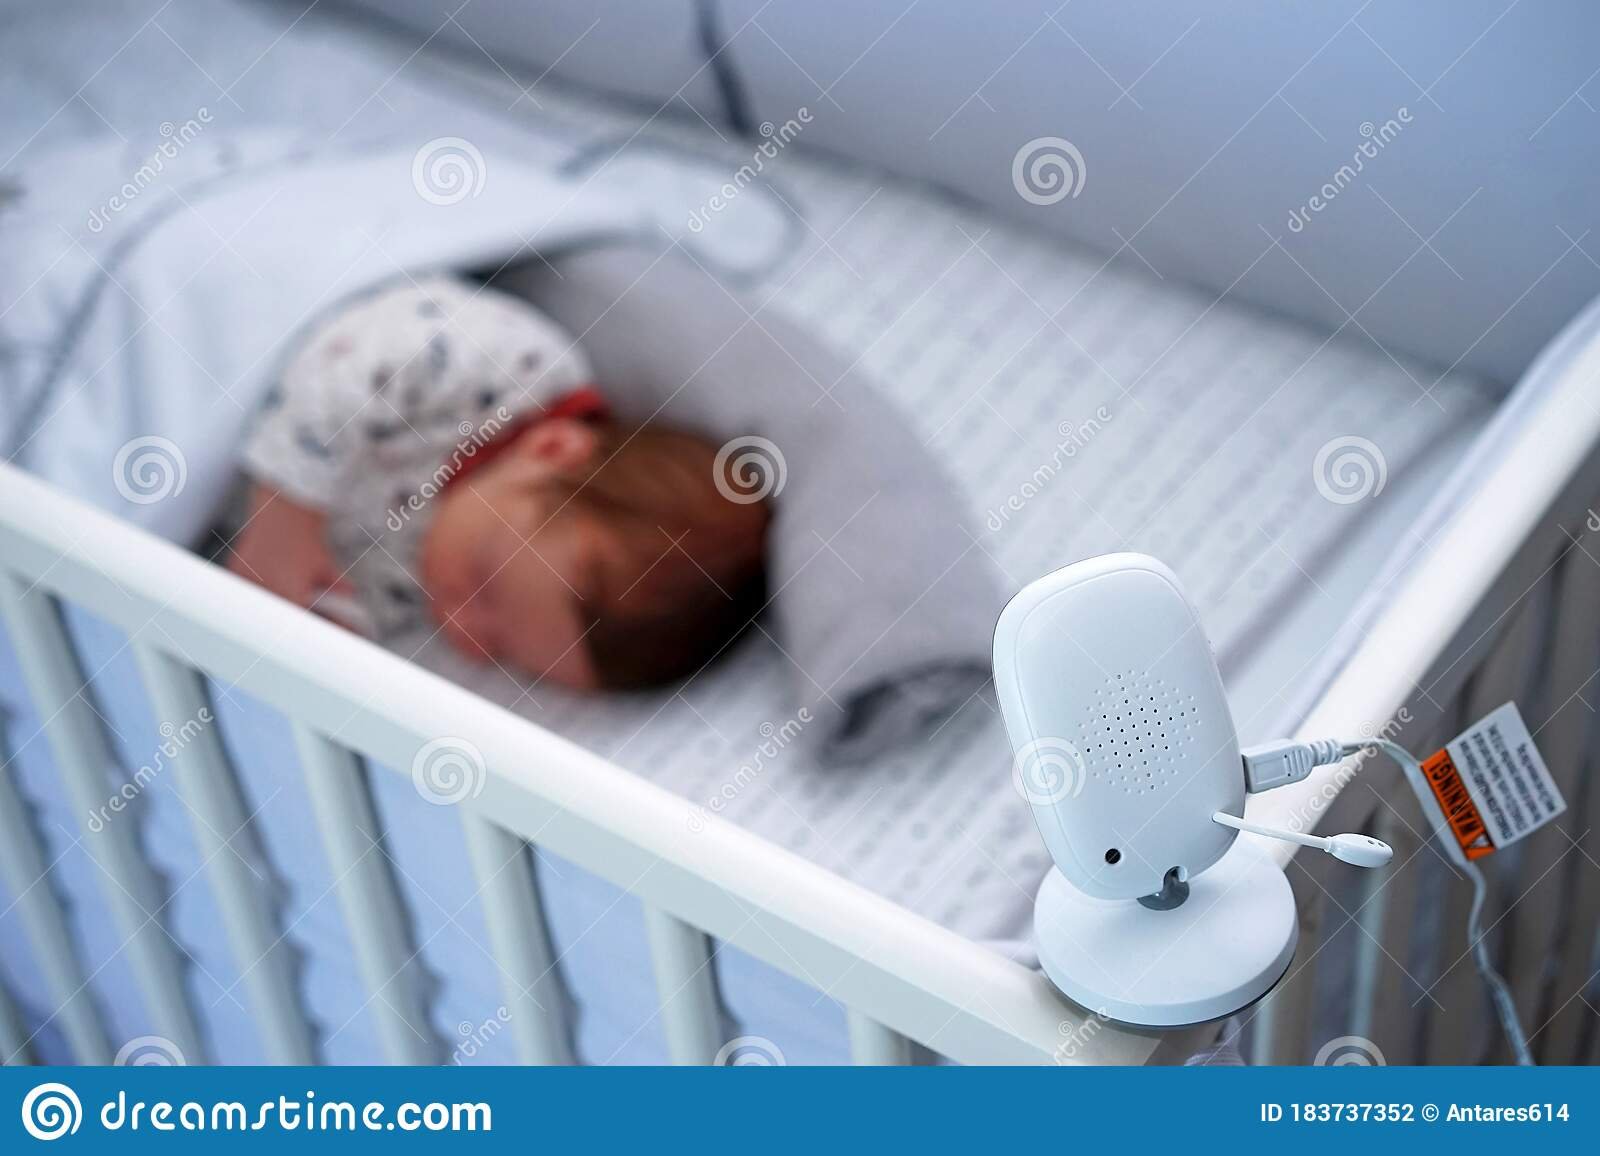 Baby Video Monitor, Surveillance Camera Stock Photo - Image of